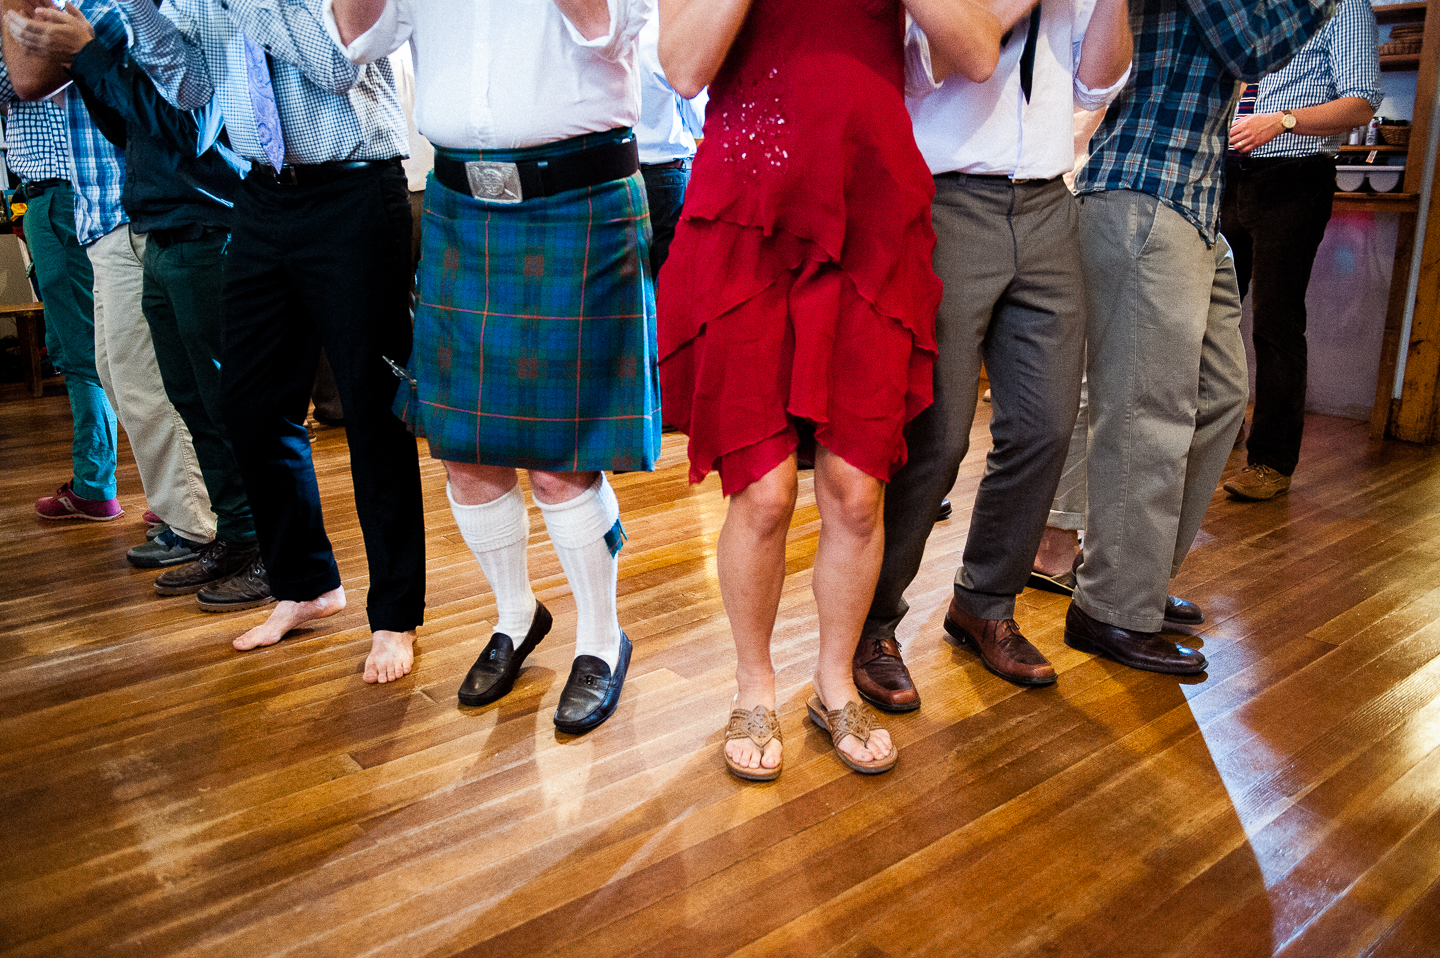 a wedding guest wearing a kilt shows off his moves on the dance floor